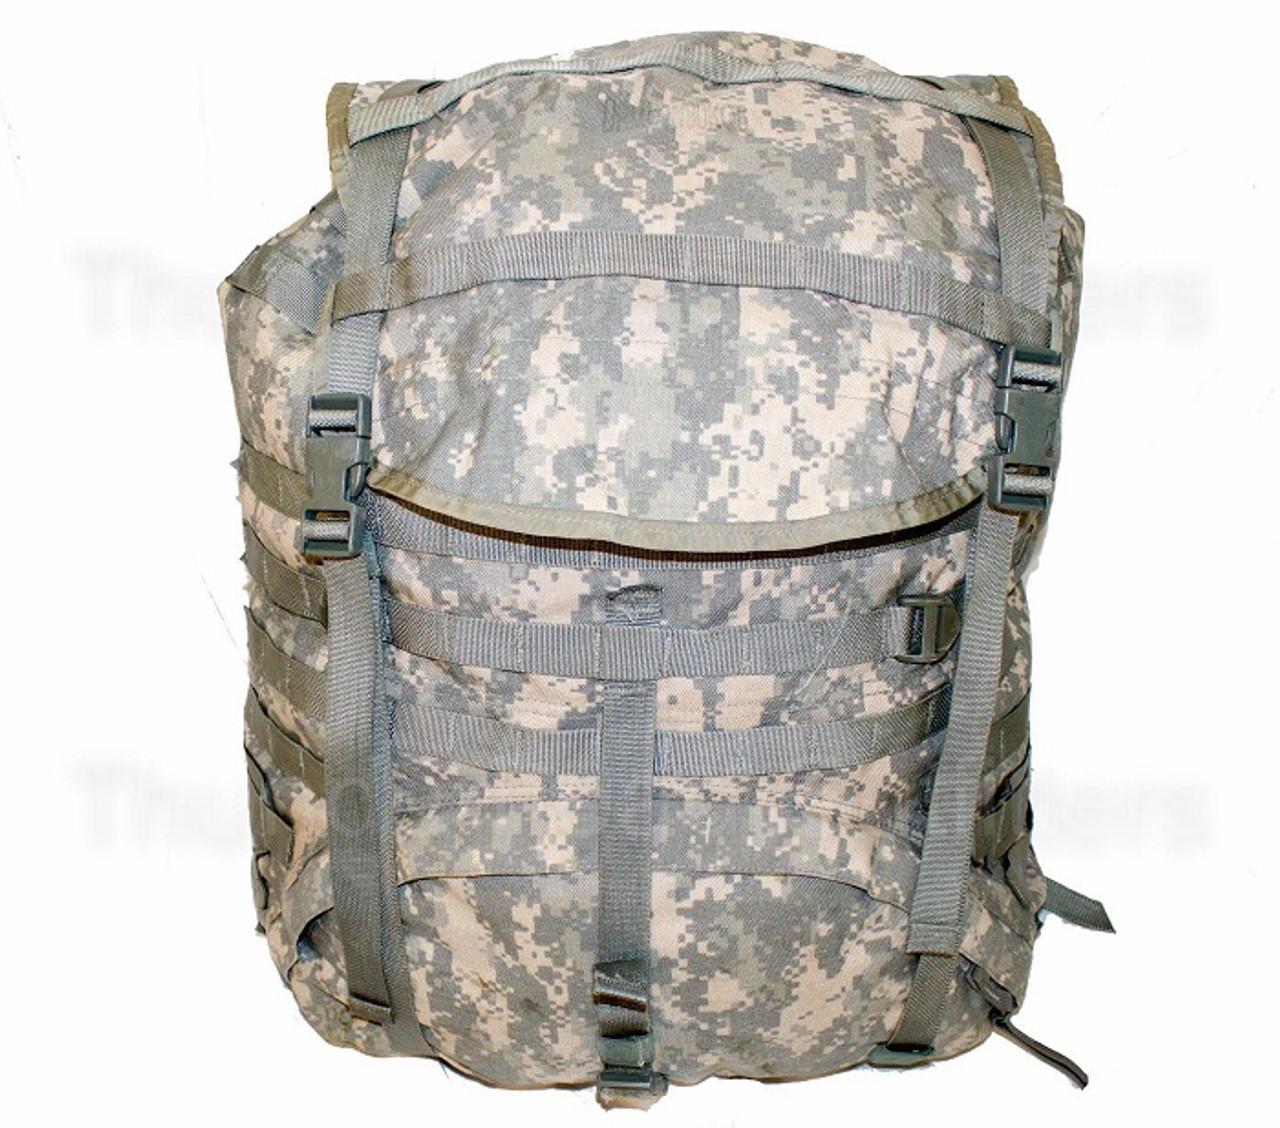 Surplus Modular Lightweight Load-Carrying Equipment (Molle) II-Rucksack - Large - Pack Only (Surplus Condition)